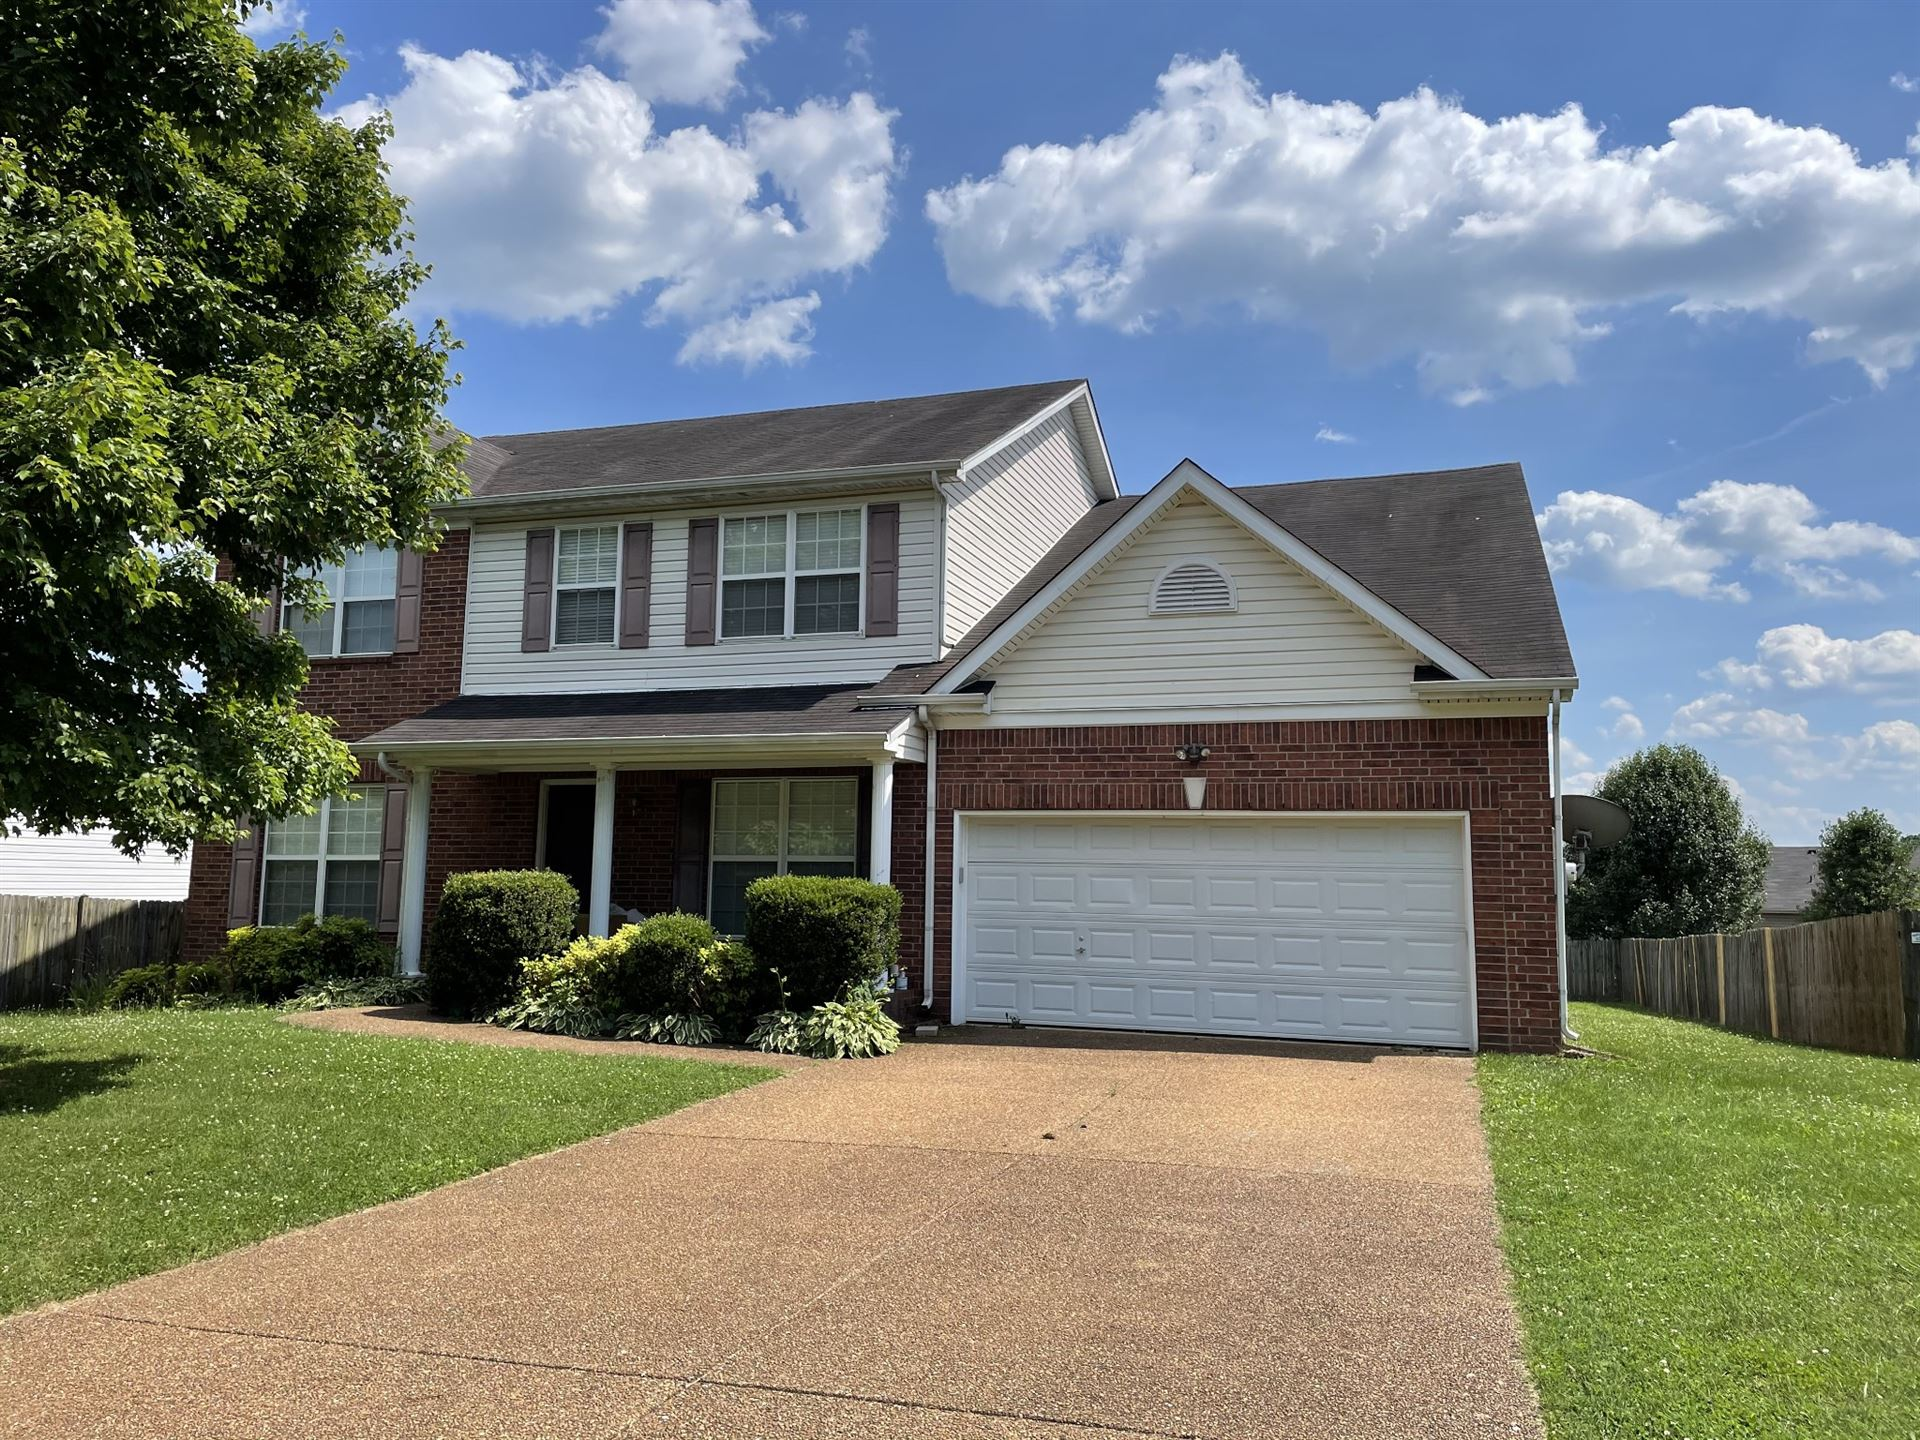 Photo of 1805 Covey Rise Ct, Spring Hill, TN 37174 (MLS # 2263988)